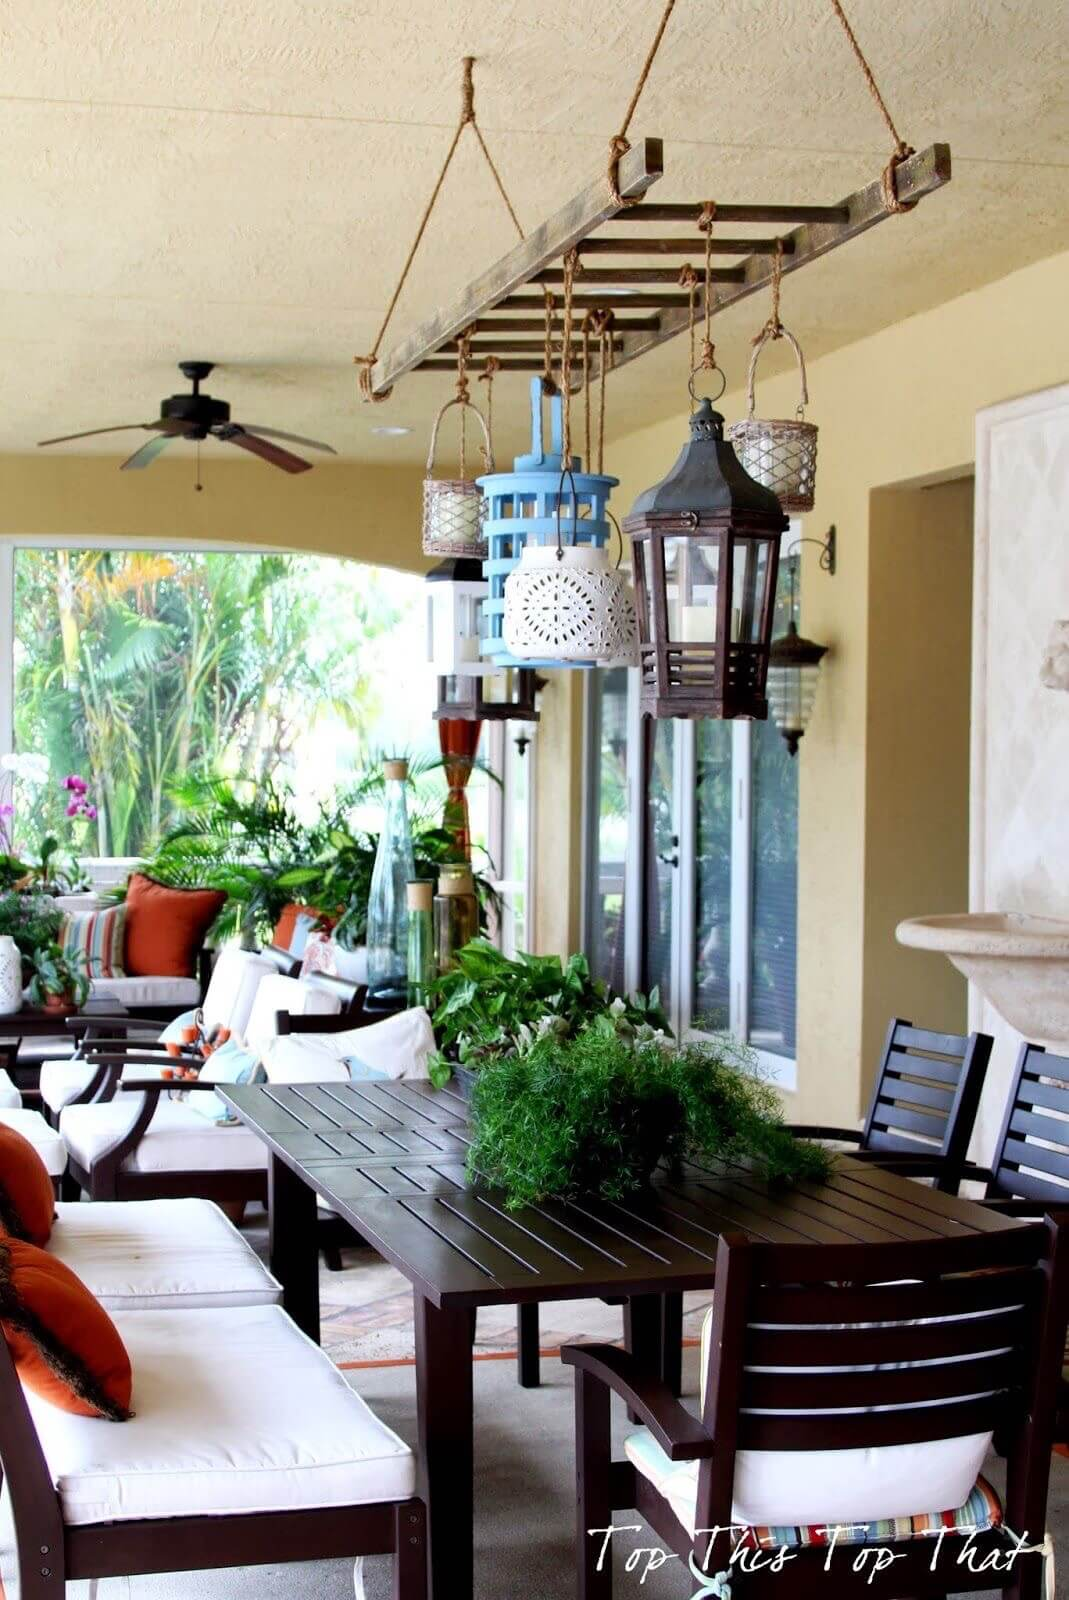 Distinctive Lighting for Outdoor Dining